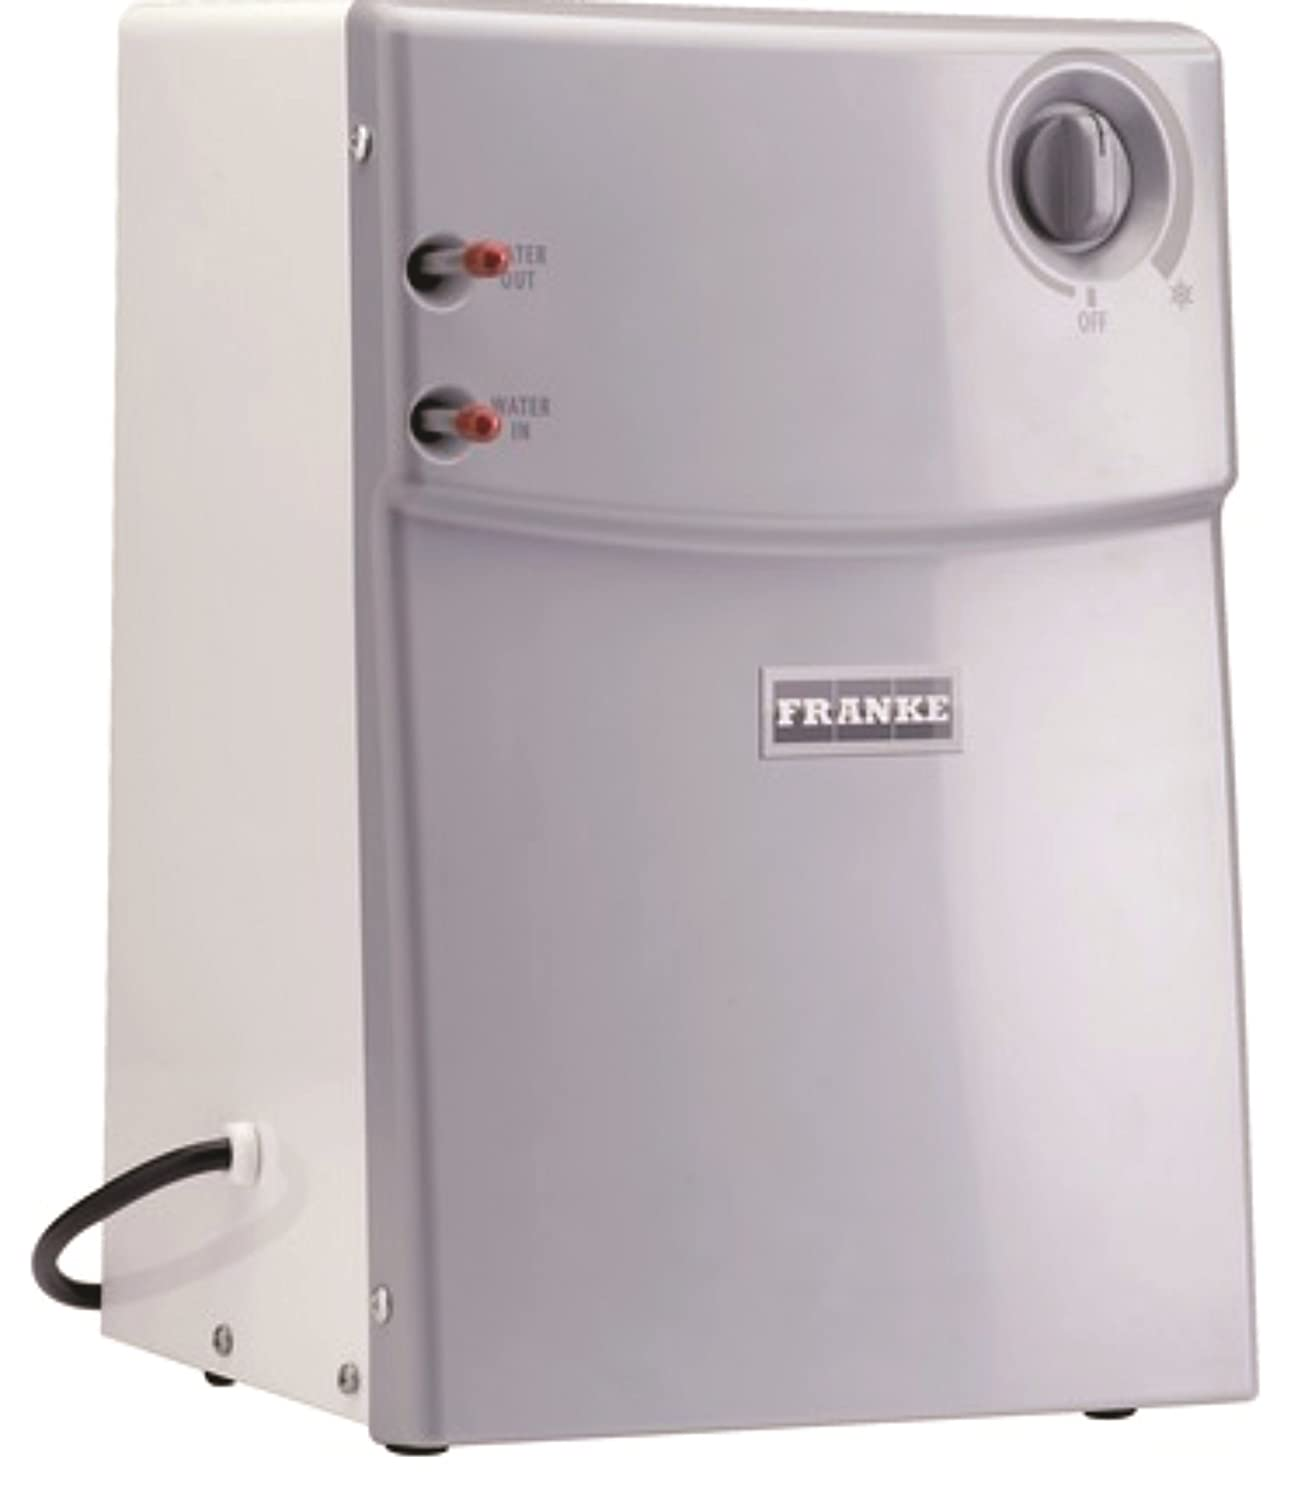 Franke CT-200 Little Butler Under Sink Filtration Cold Water Chiller Tank, White, Large Stainless Steel